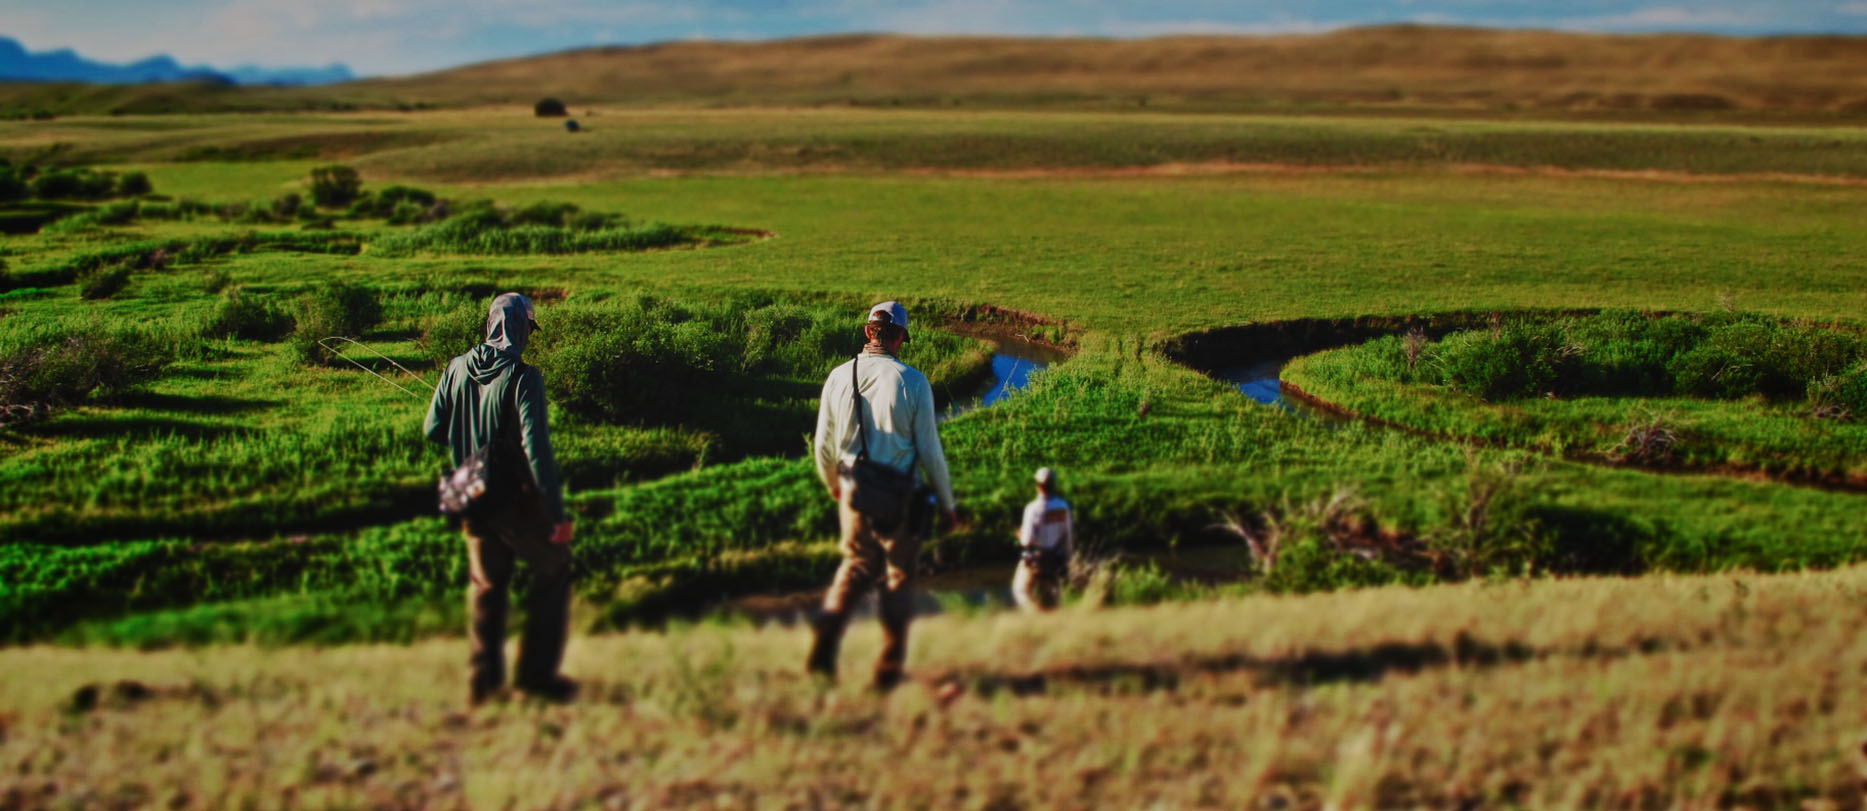 Private Water Wyoming Dry Fly Fishing Guide Service